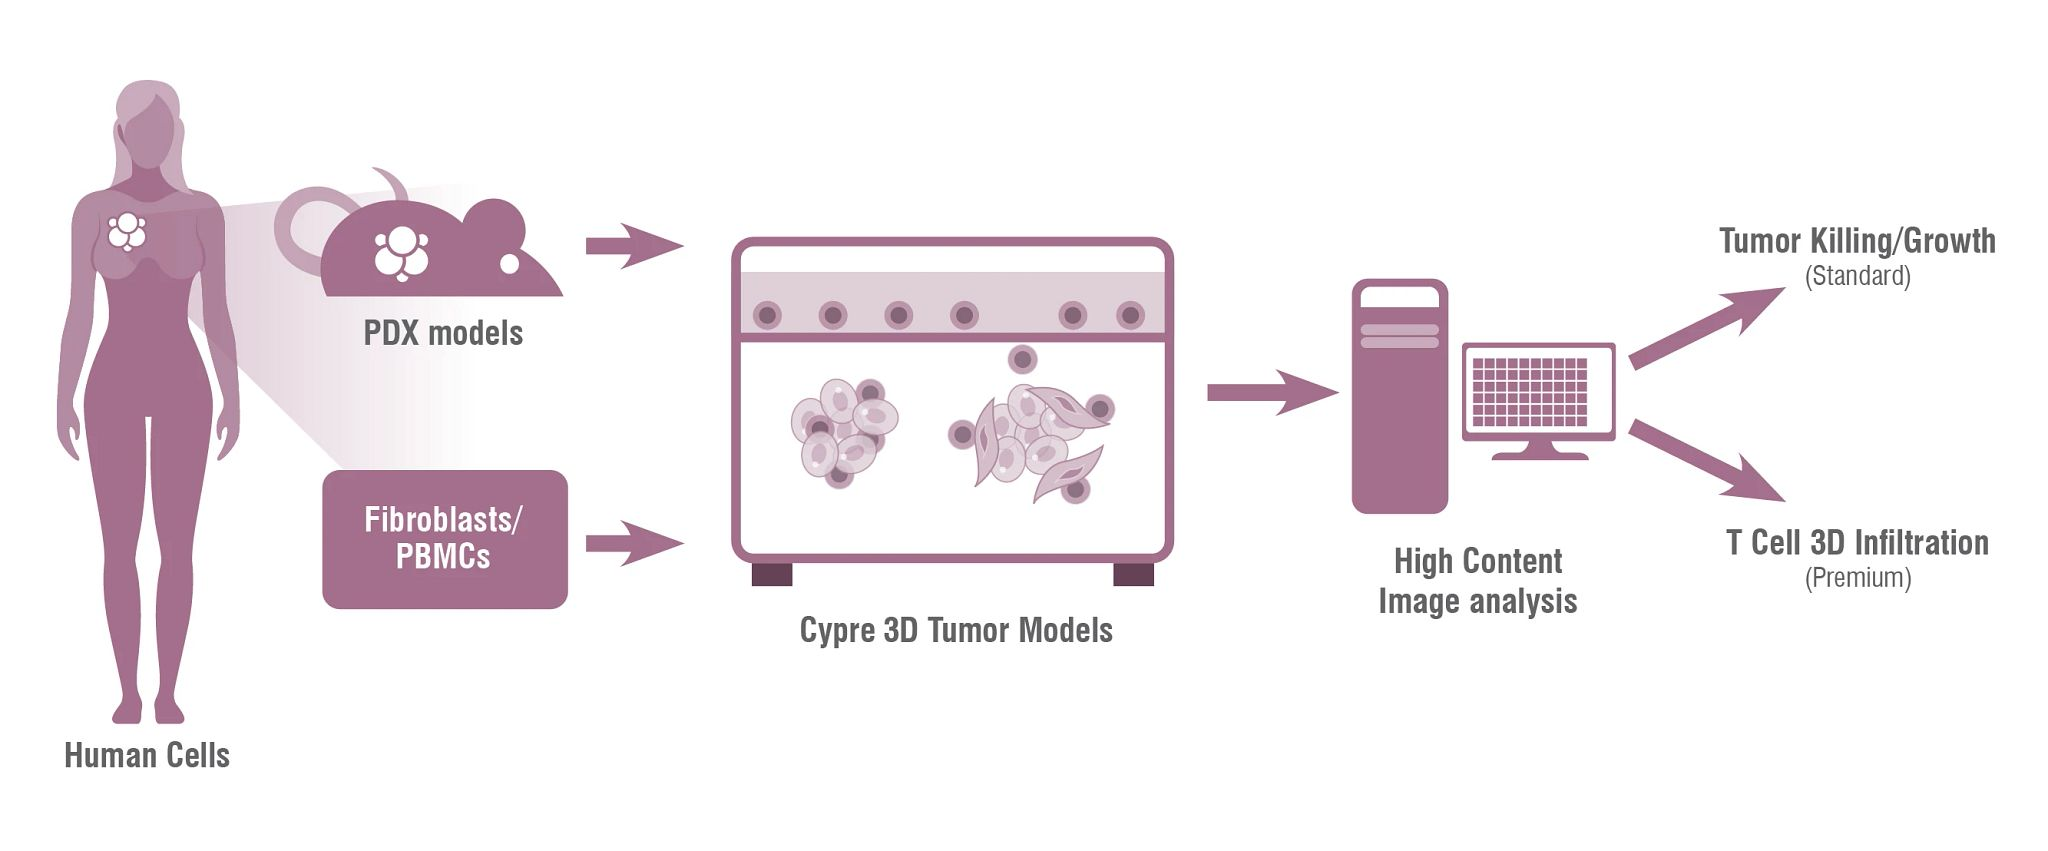 Human cells are isolated and introduced into the Falcon-X 3D tumor model platform, including PDX, fibroblasts and PBMCs. The resulting hydrogel 3D model is analyzed by high content imaging.